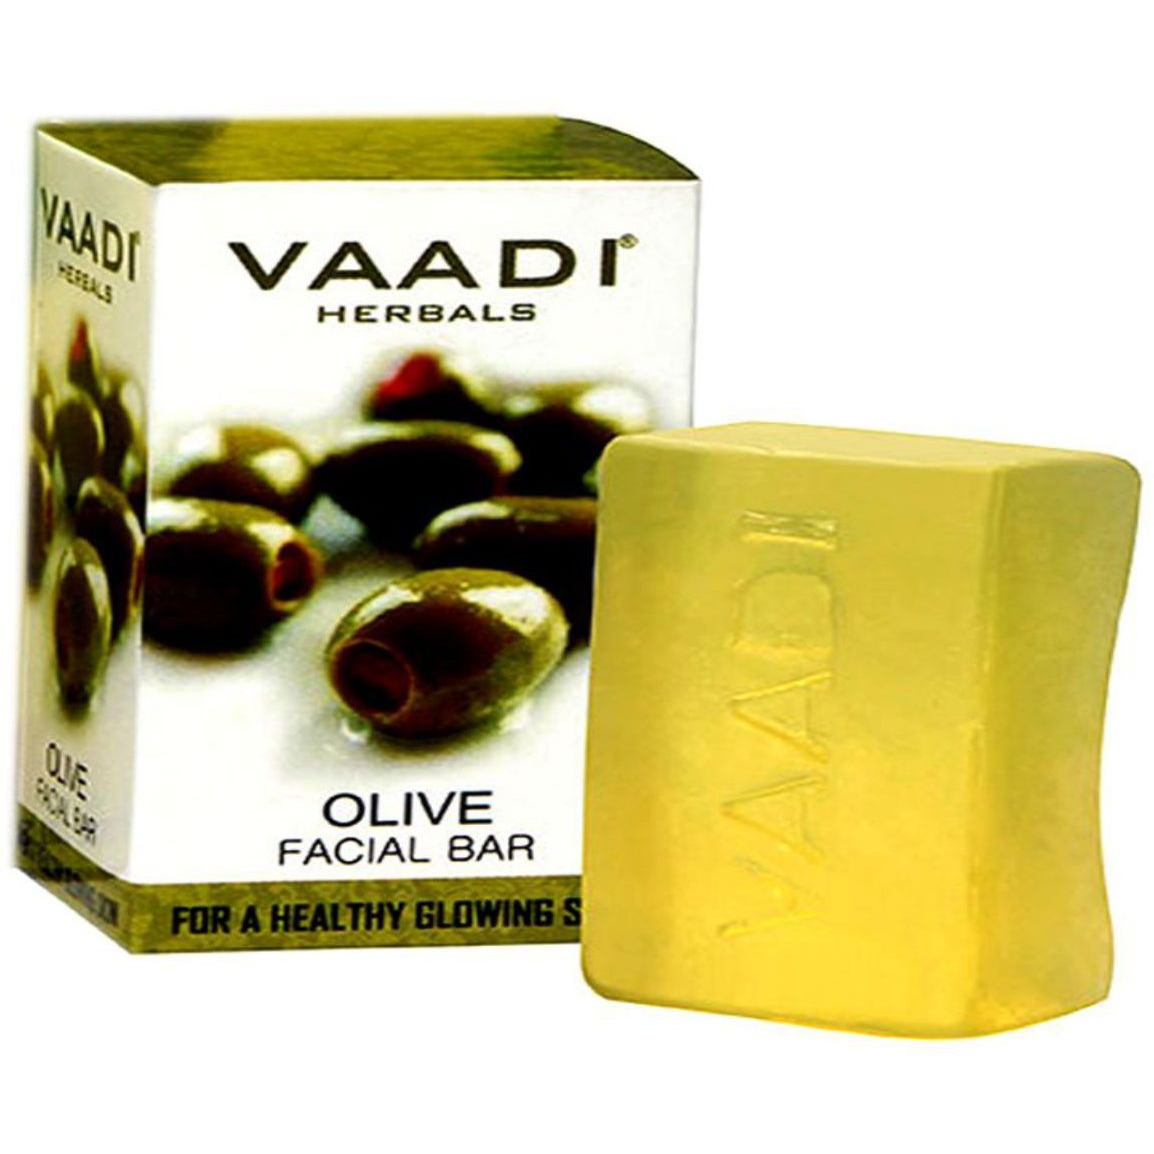 Olive Facial Bar 25GM For Cleanse The Skin Healthy Glow By Vaadi Herbals